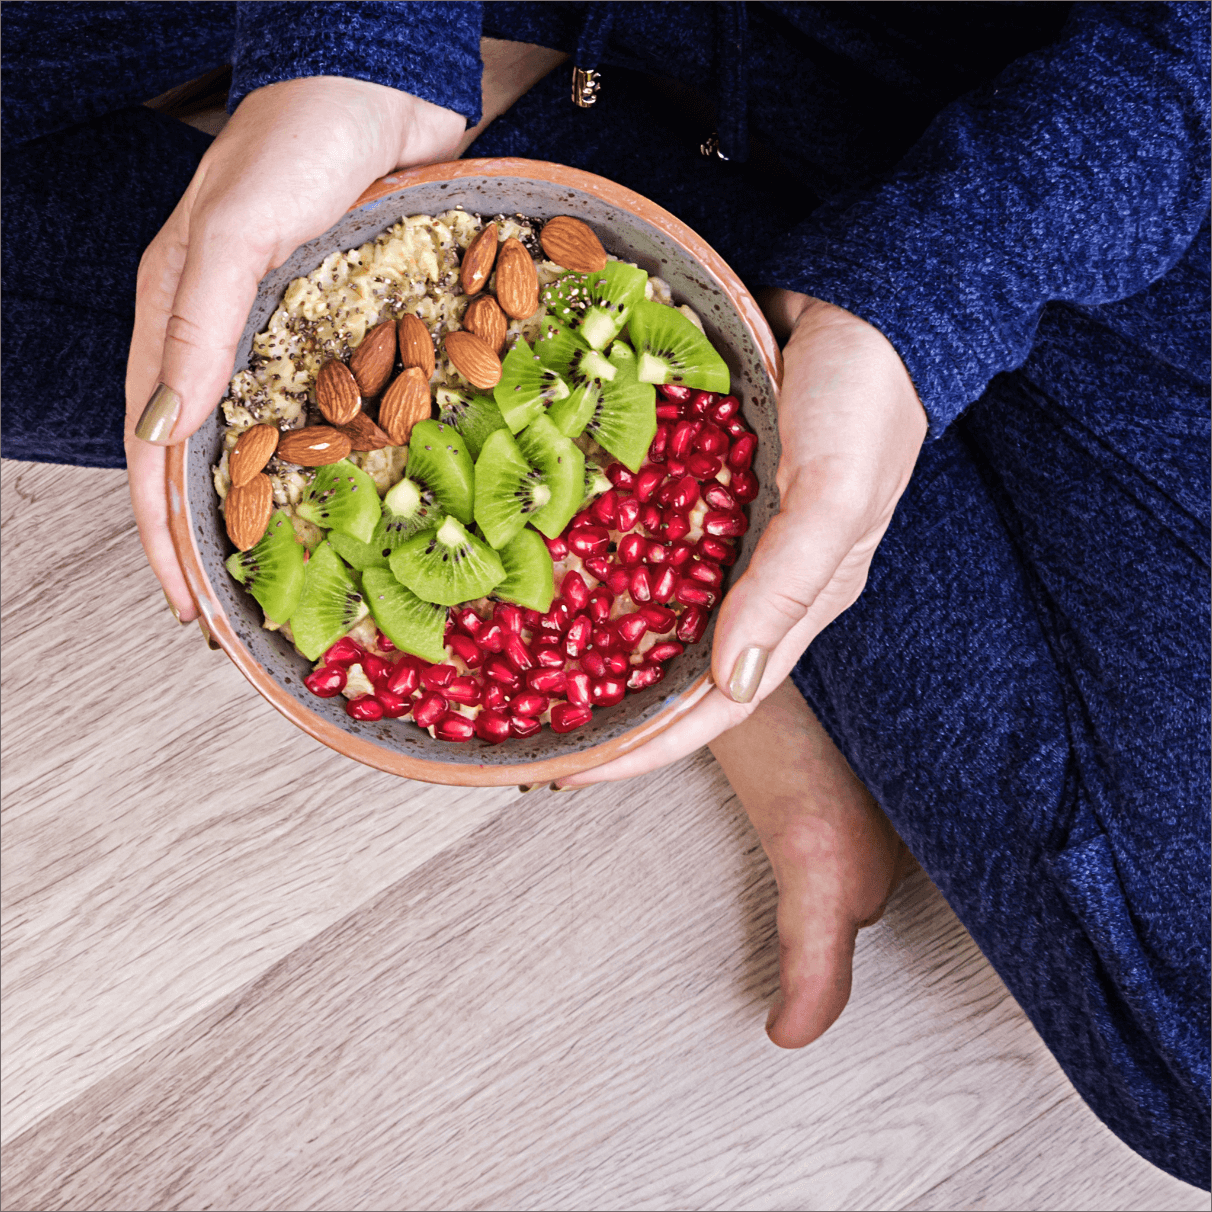 How do I lose weight after treatment?